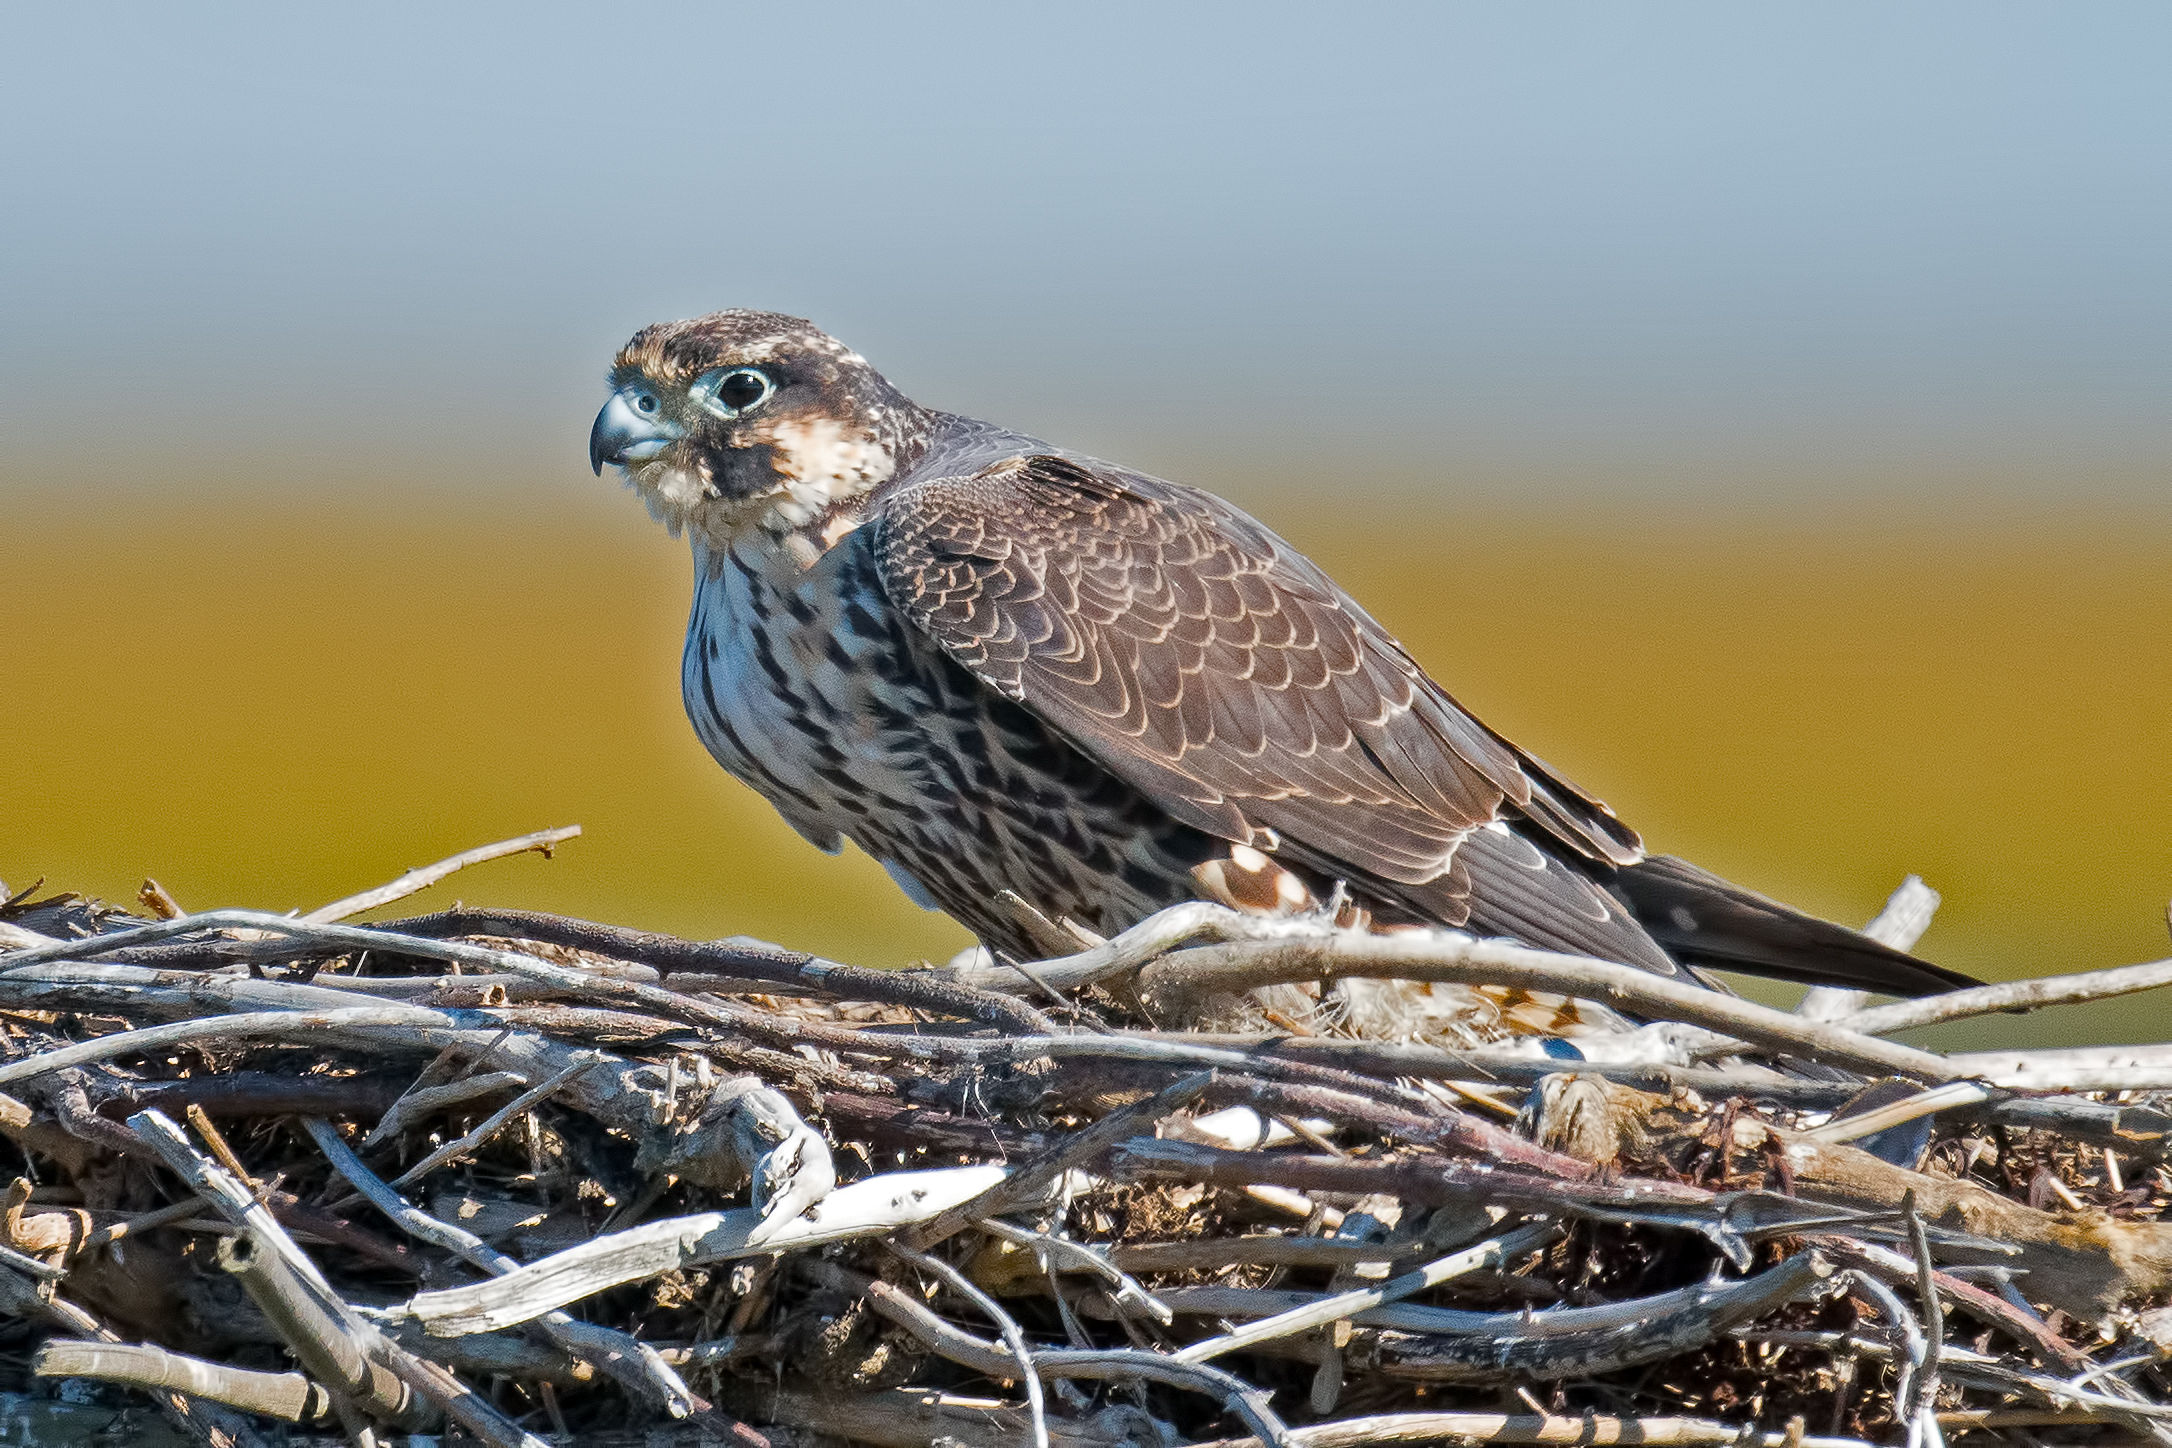 WATCH: Here's Why Peregrine Falcons Are Being Pushed From Their Nests In North Carolina